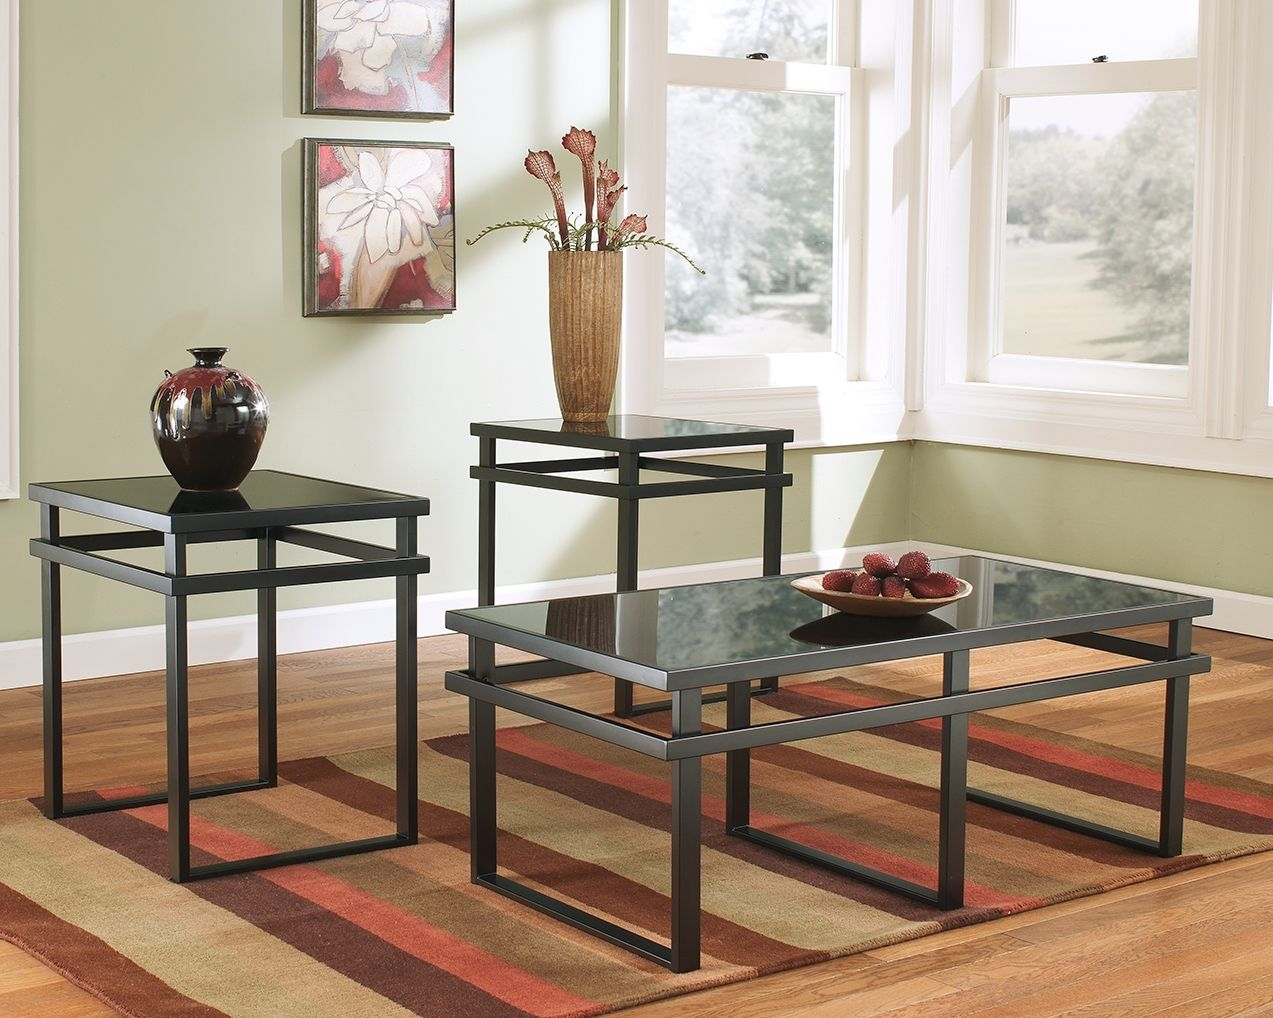 Laney Table Set Of 3 Black In 2020 Living Room Table Sets